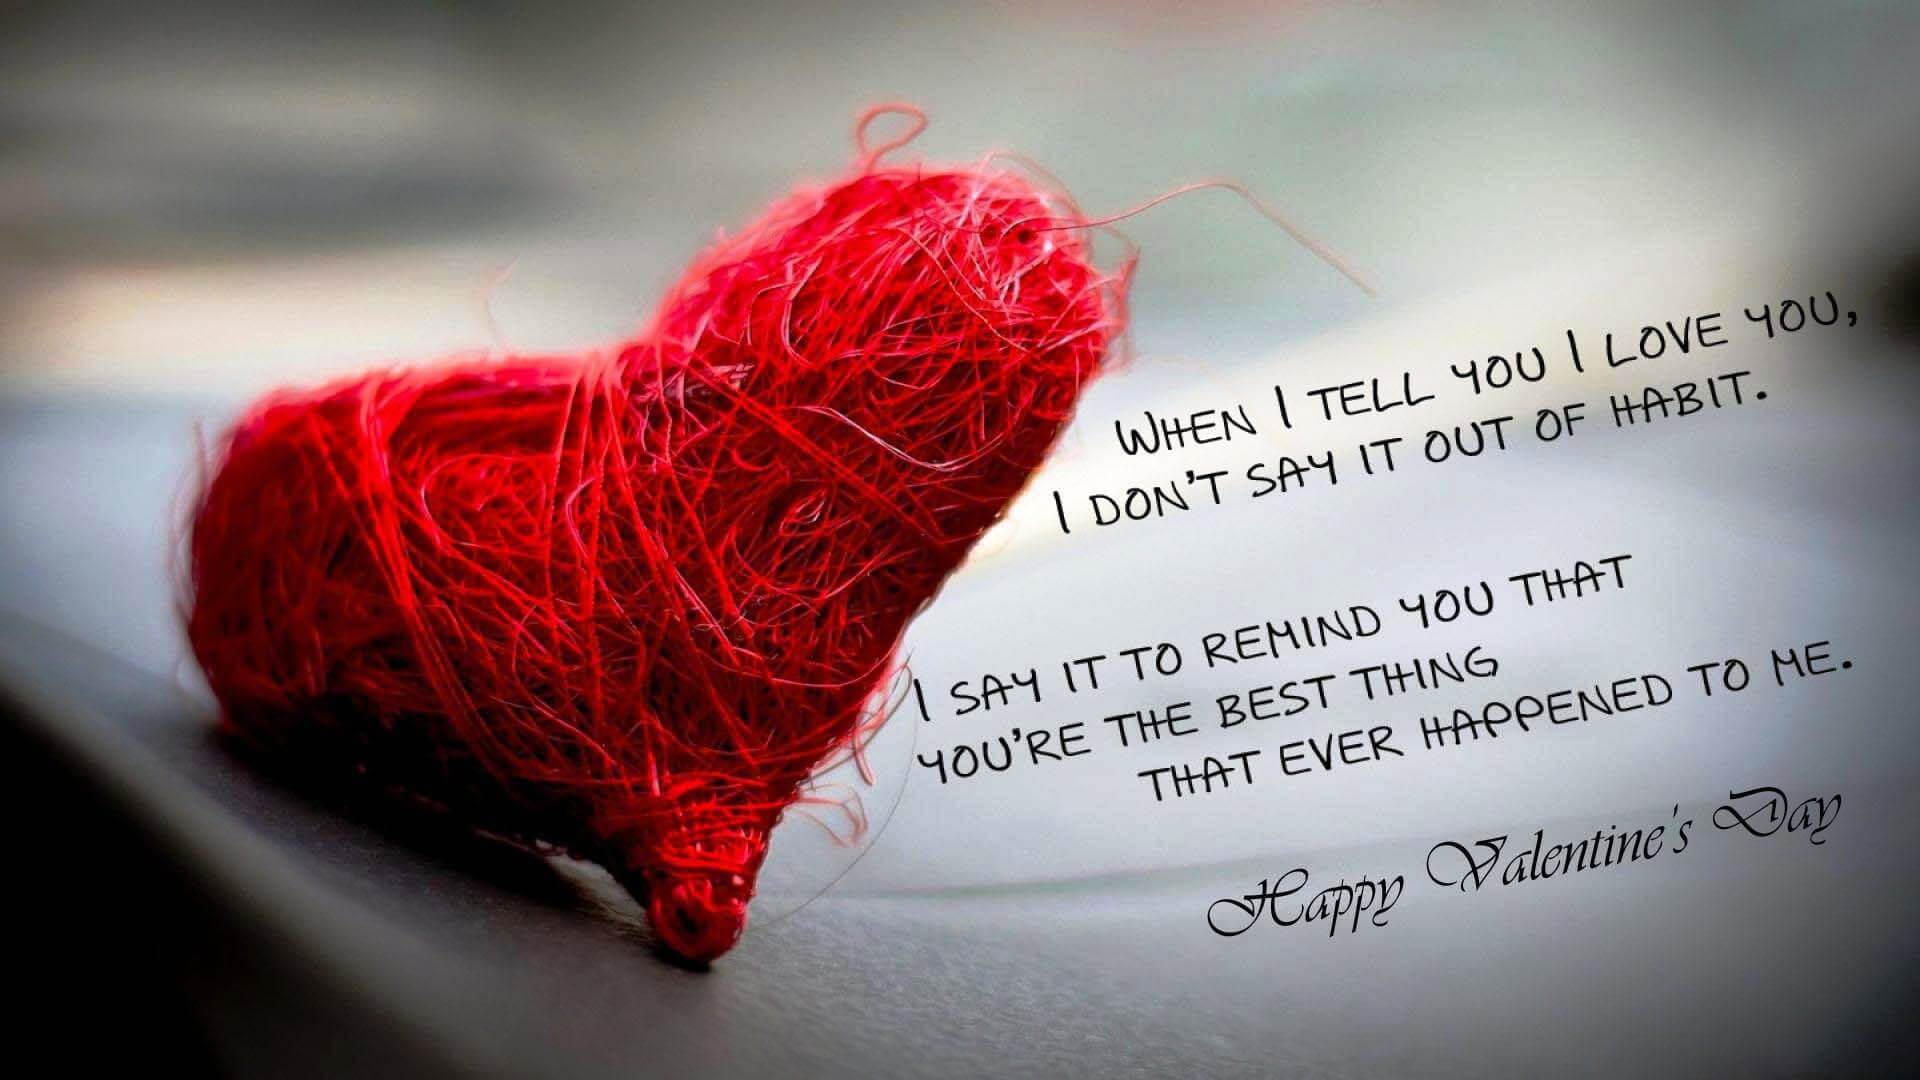 happy valentines day quotes and sms